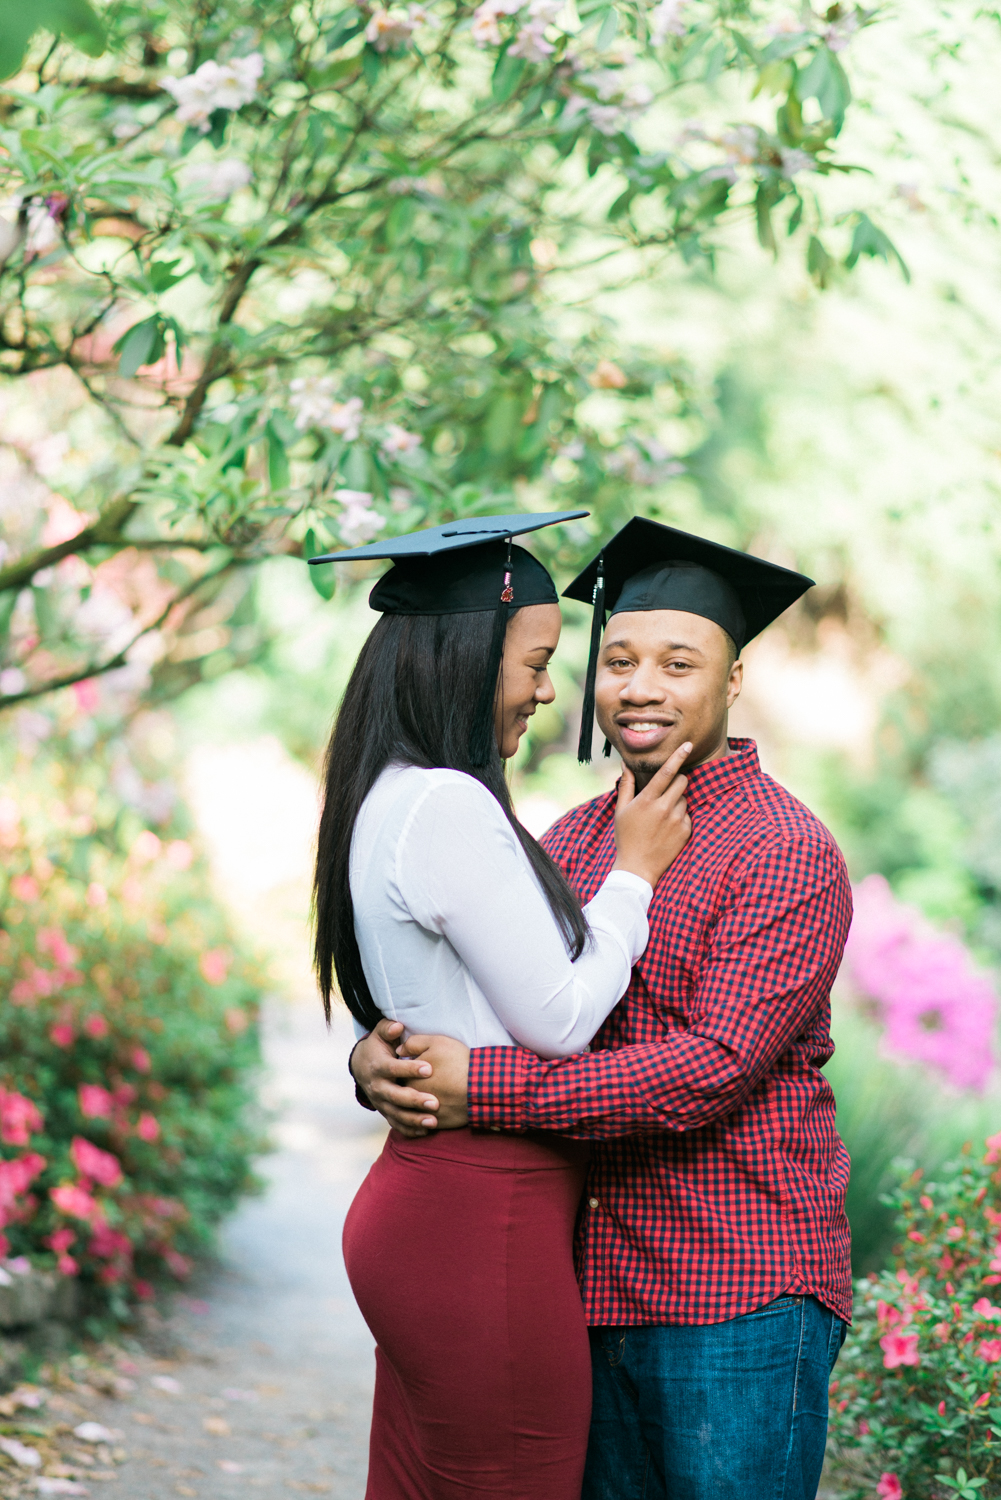 portland-engagement-photographer-wsu-graduation-portrait-crystal-springs-rhododendron-garden-shelley-marie-photo-2